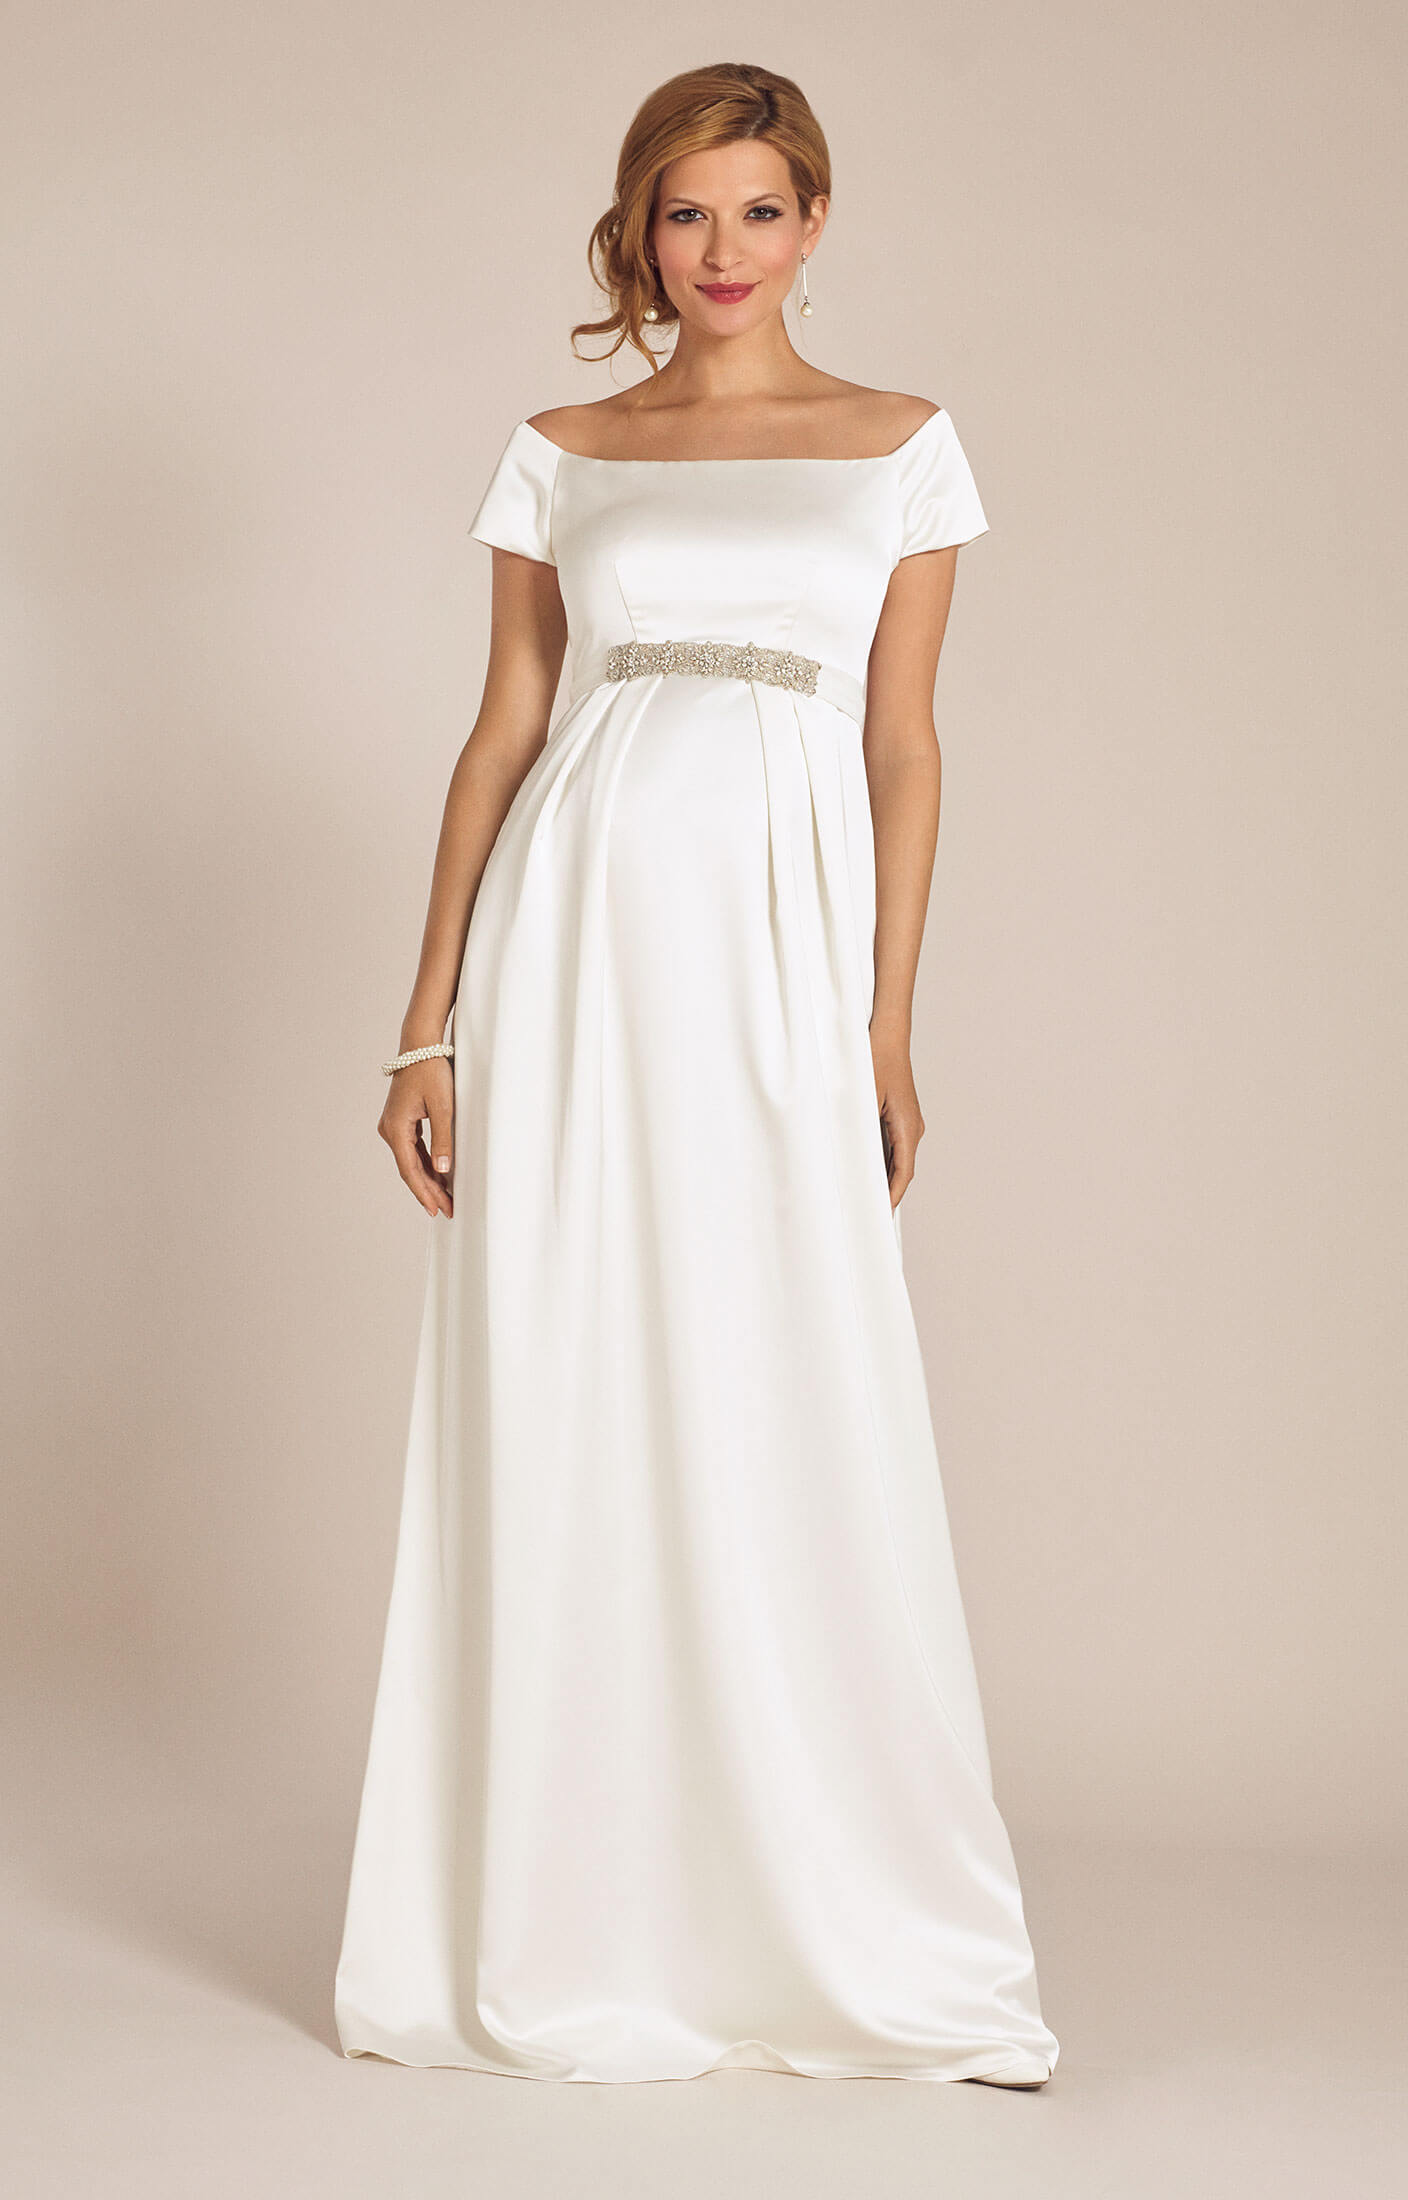 Aria Maternity Wedding Gown Ivory - Maternity Wedding Dresses ...